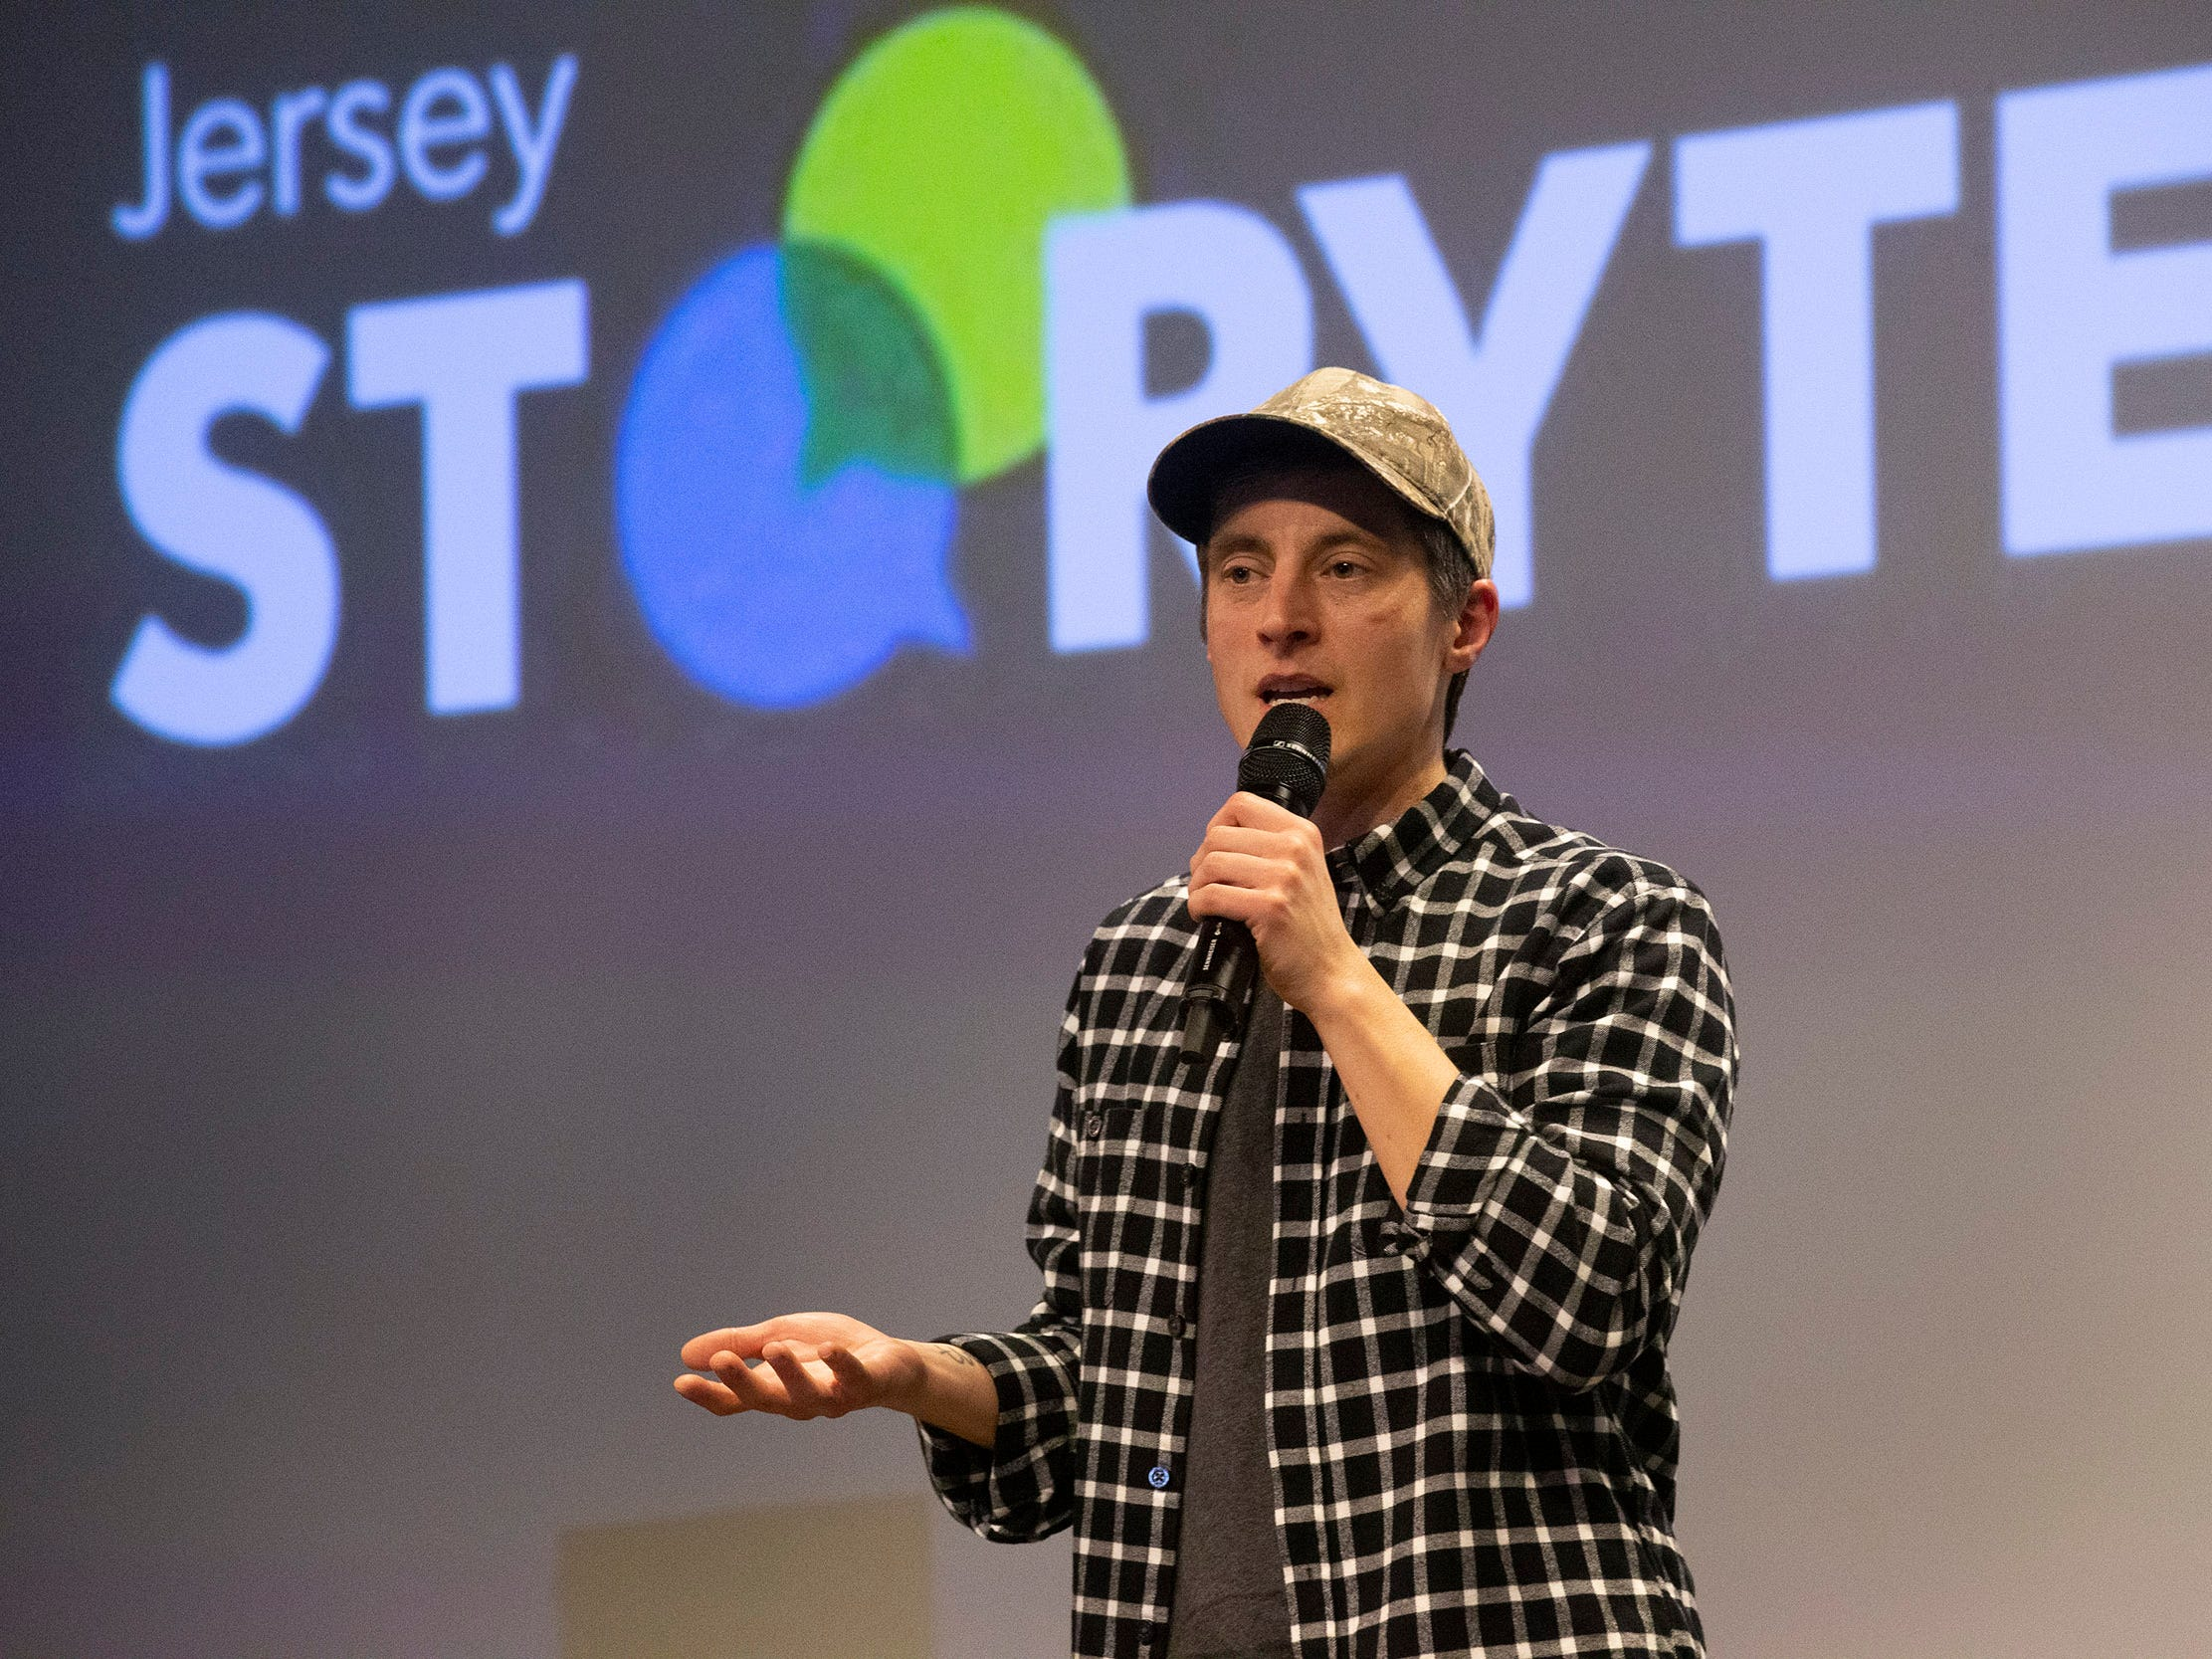 Dillan DiGiovanni tells his story.  Speakers and crowds alike enjoy the latest version of Storytellers in Asbury Park on February 27, 2019, this night's subject was starting over.